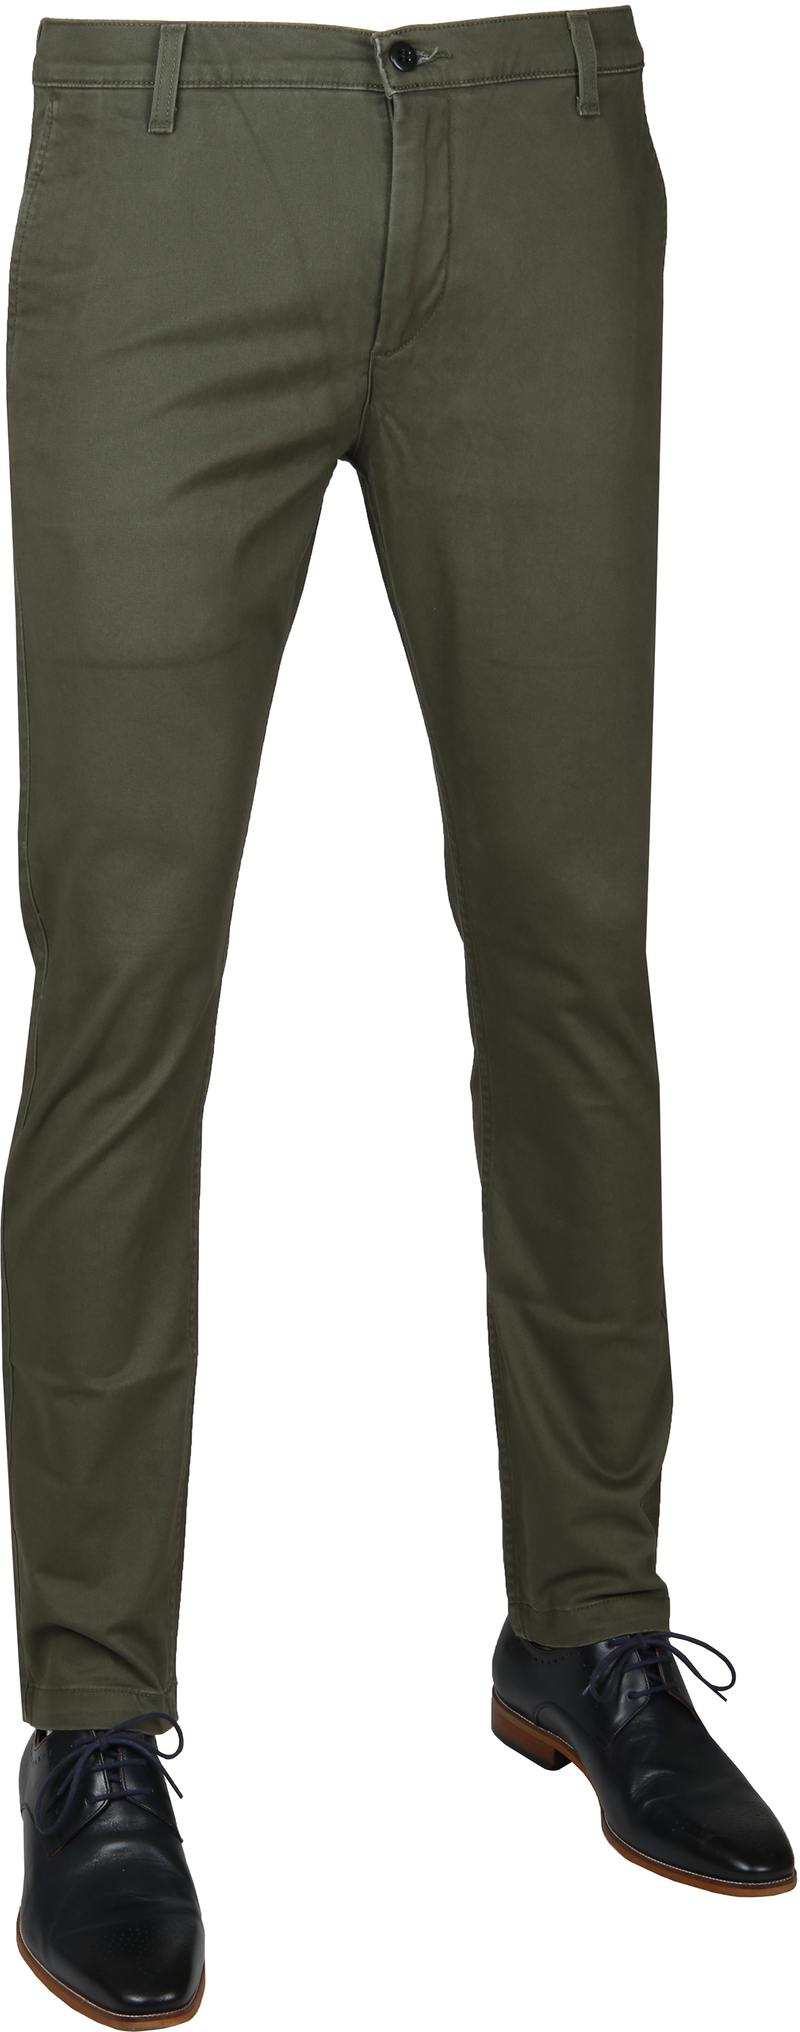 Dockers Skinny Tapered Groen foto 0